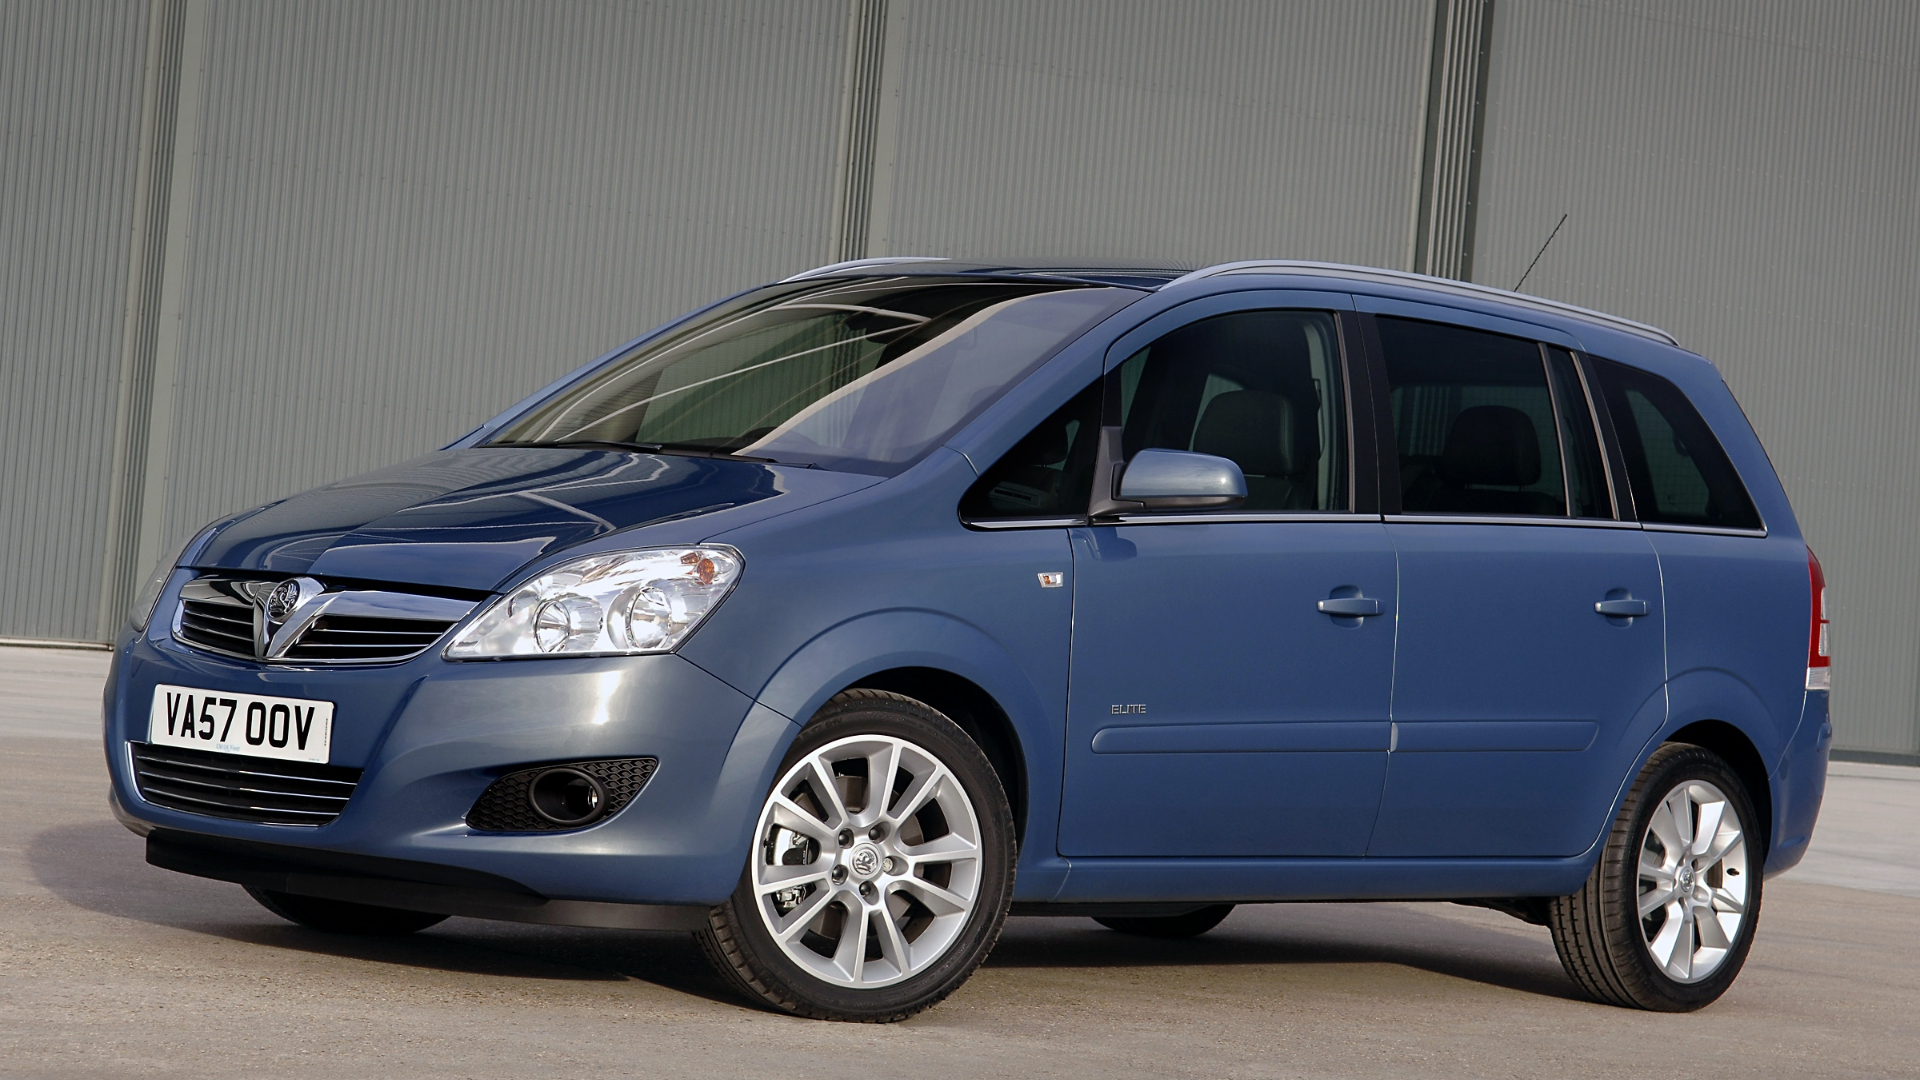 The worst car recalls ever